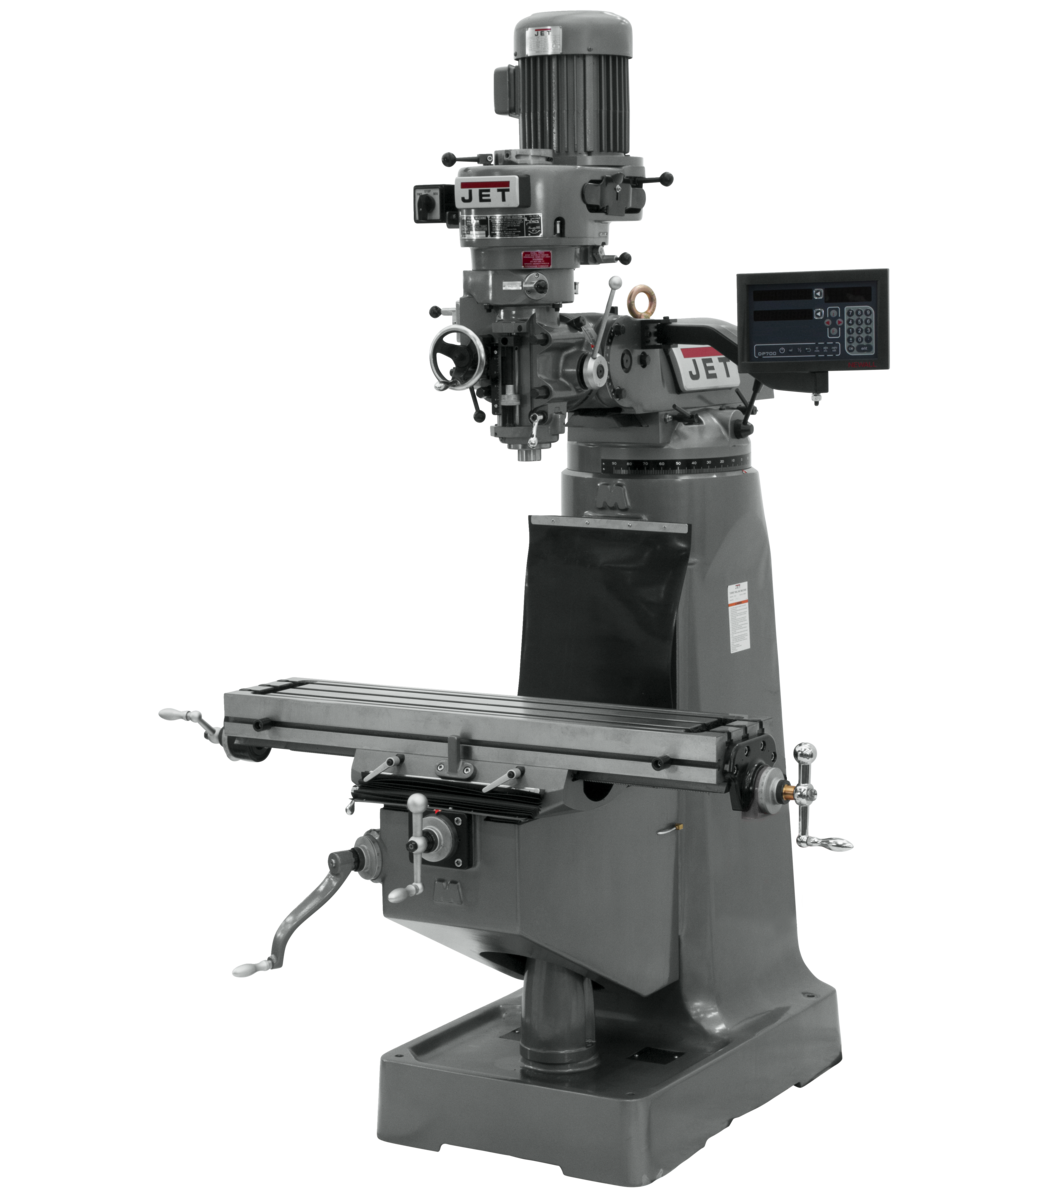 JTM-2 Mill With 3-Axis Newall DP700 DRO (Knee)